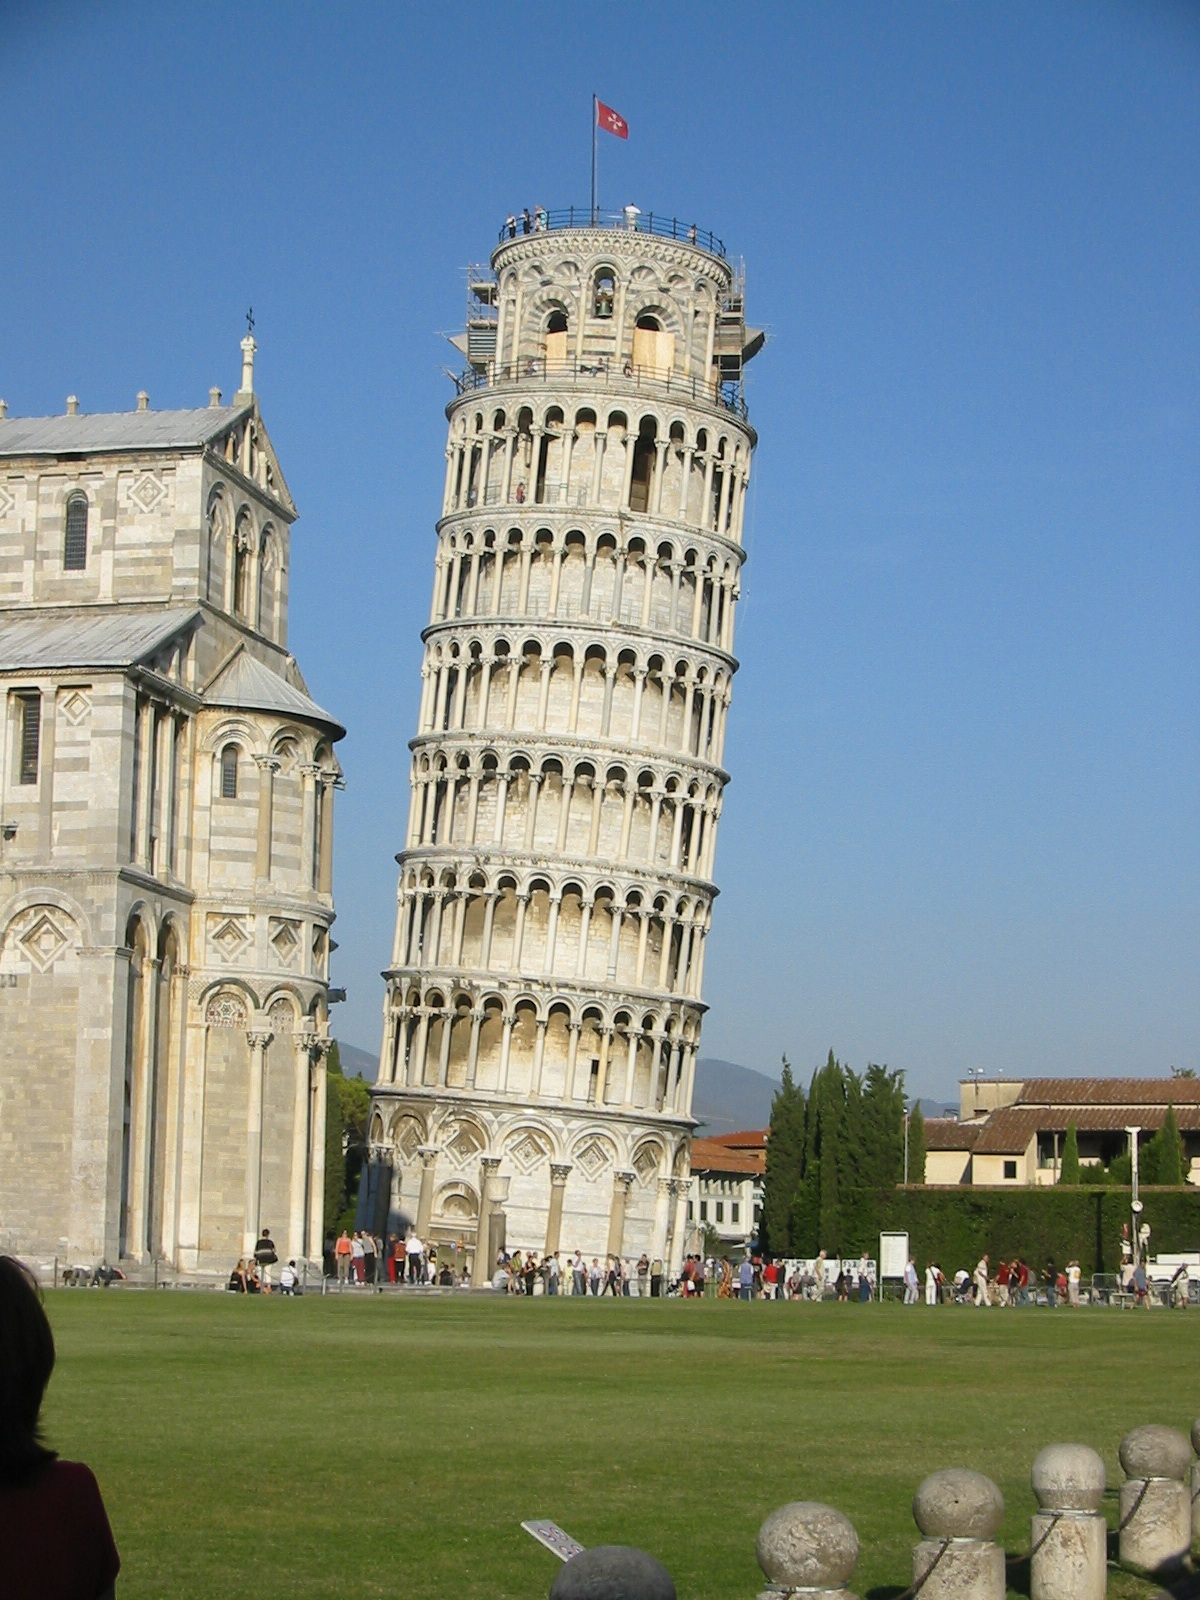 Travel Memories with Leaning Tower of Pisa - Gamesforlanguage.com